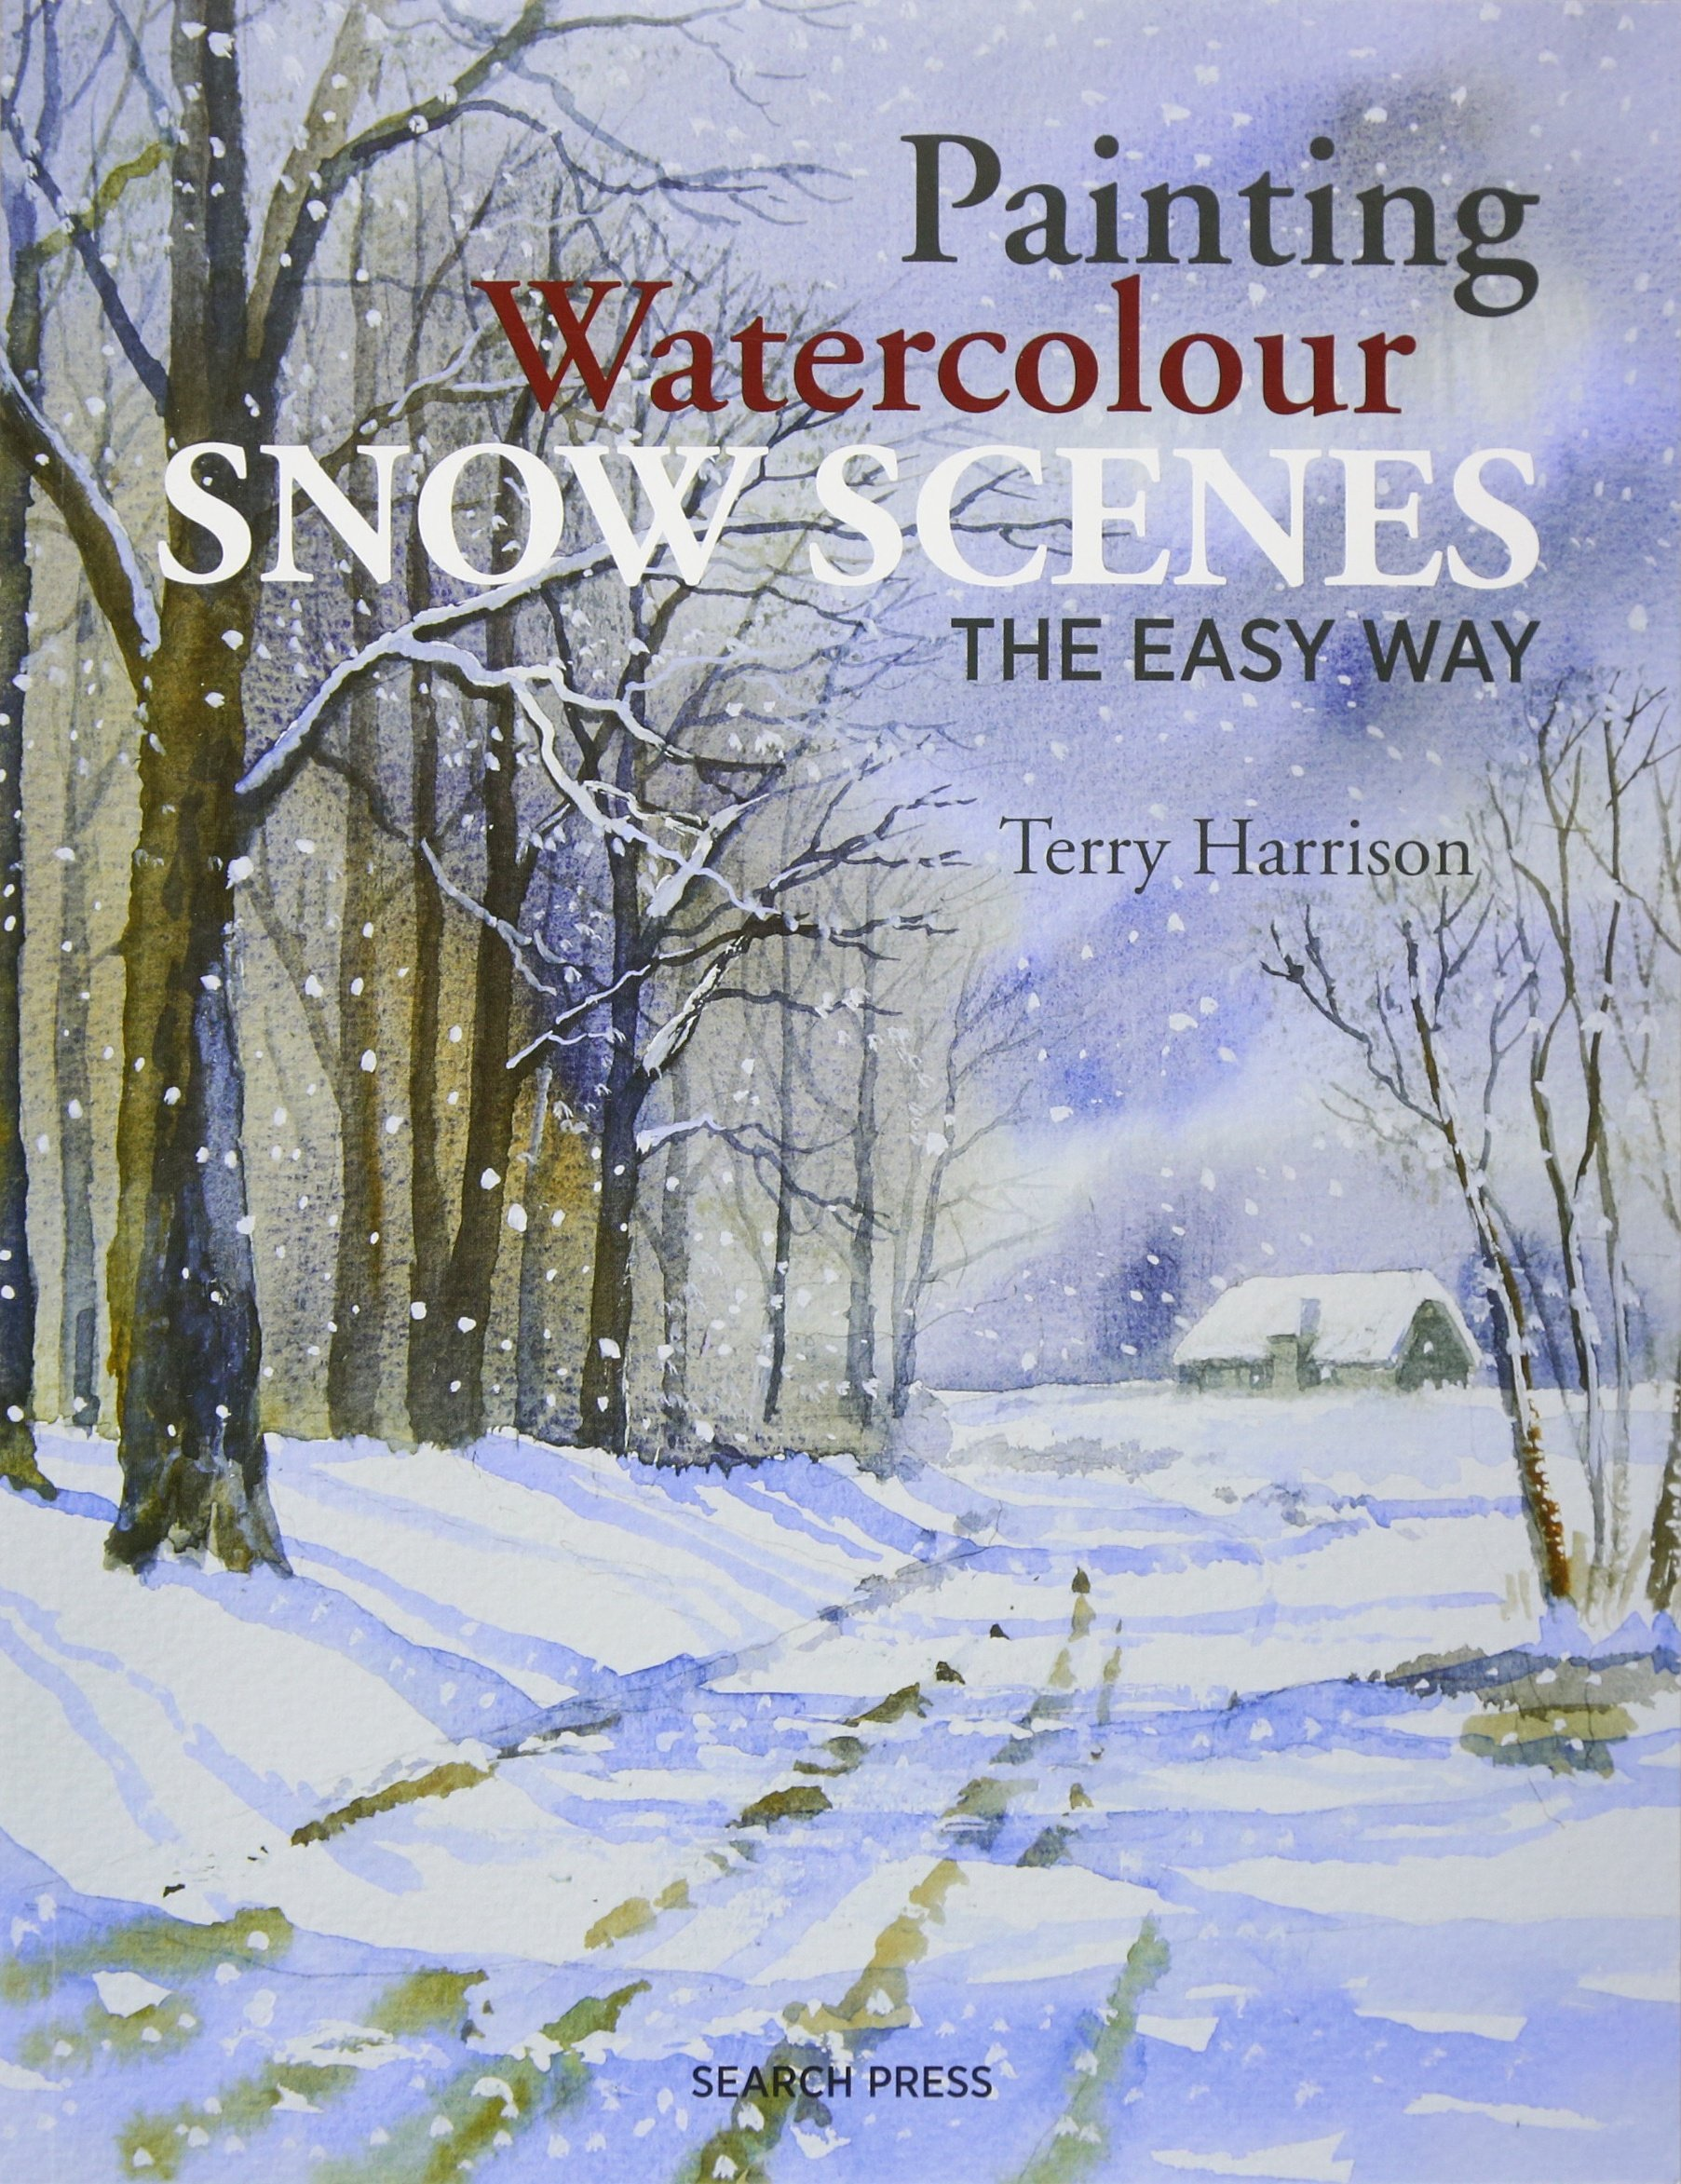 Watercolor books by search press - Painting Watercolour Snow Scenes The Easy Way Harrison 9781782213253 Amazon Com Books